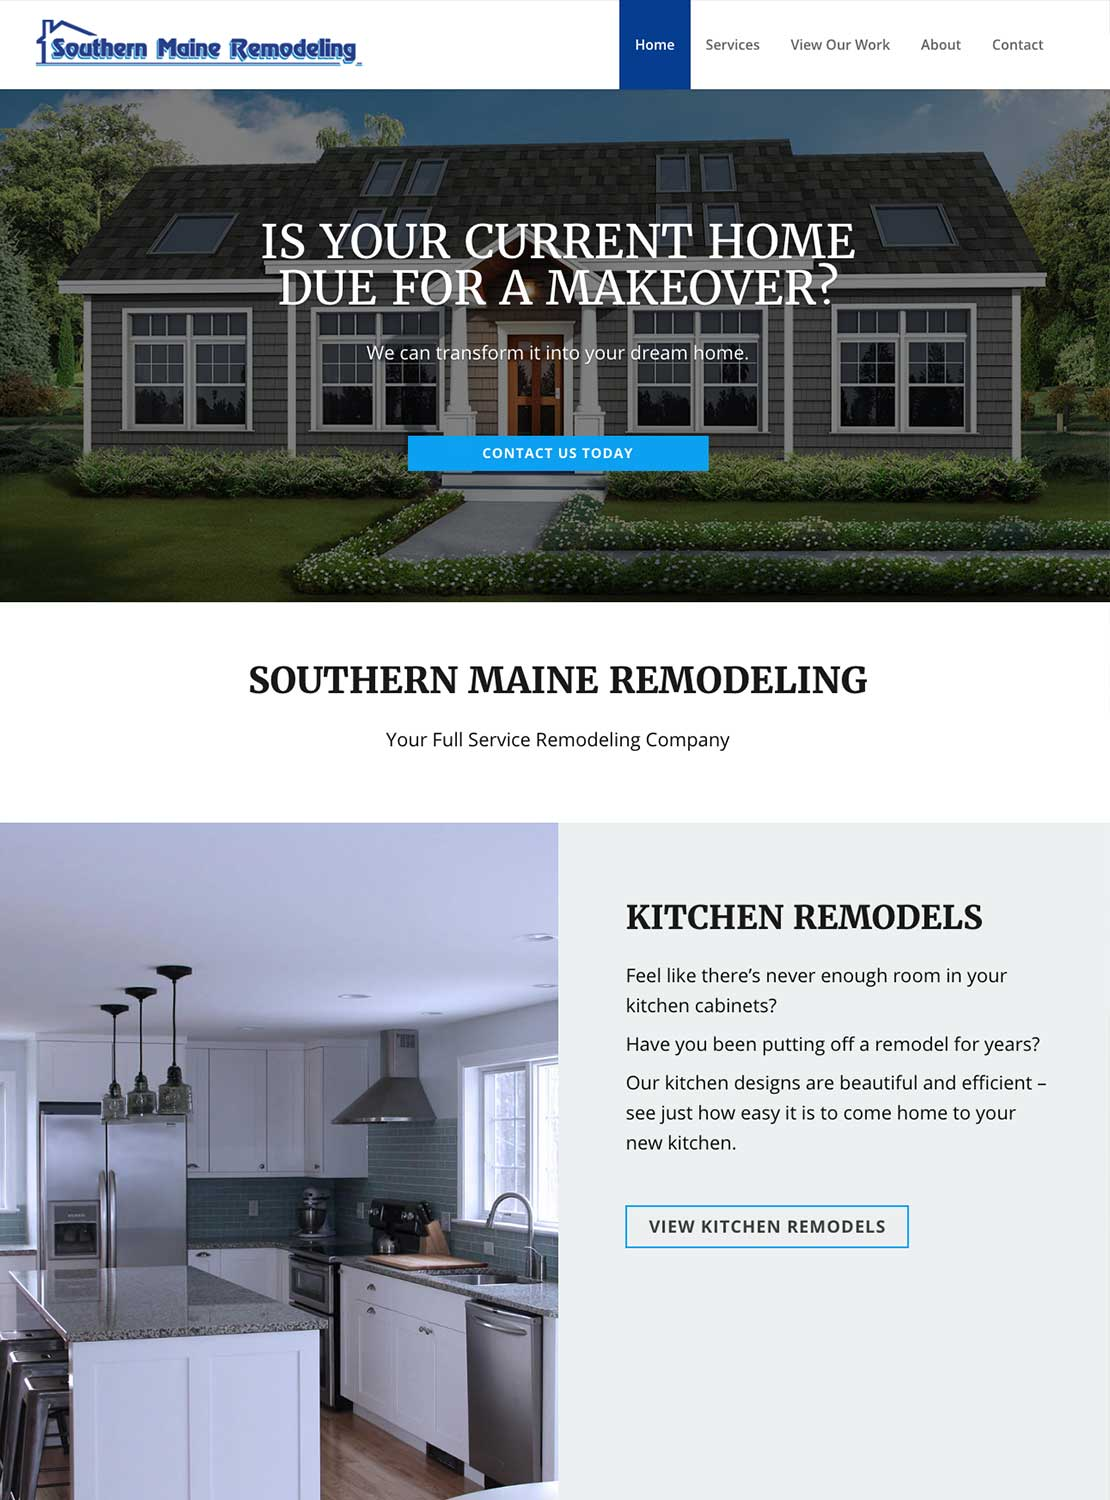 Southern Maine Remodeling Homepage